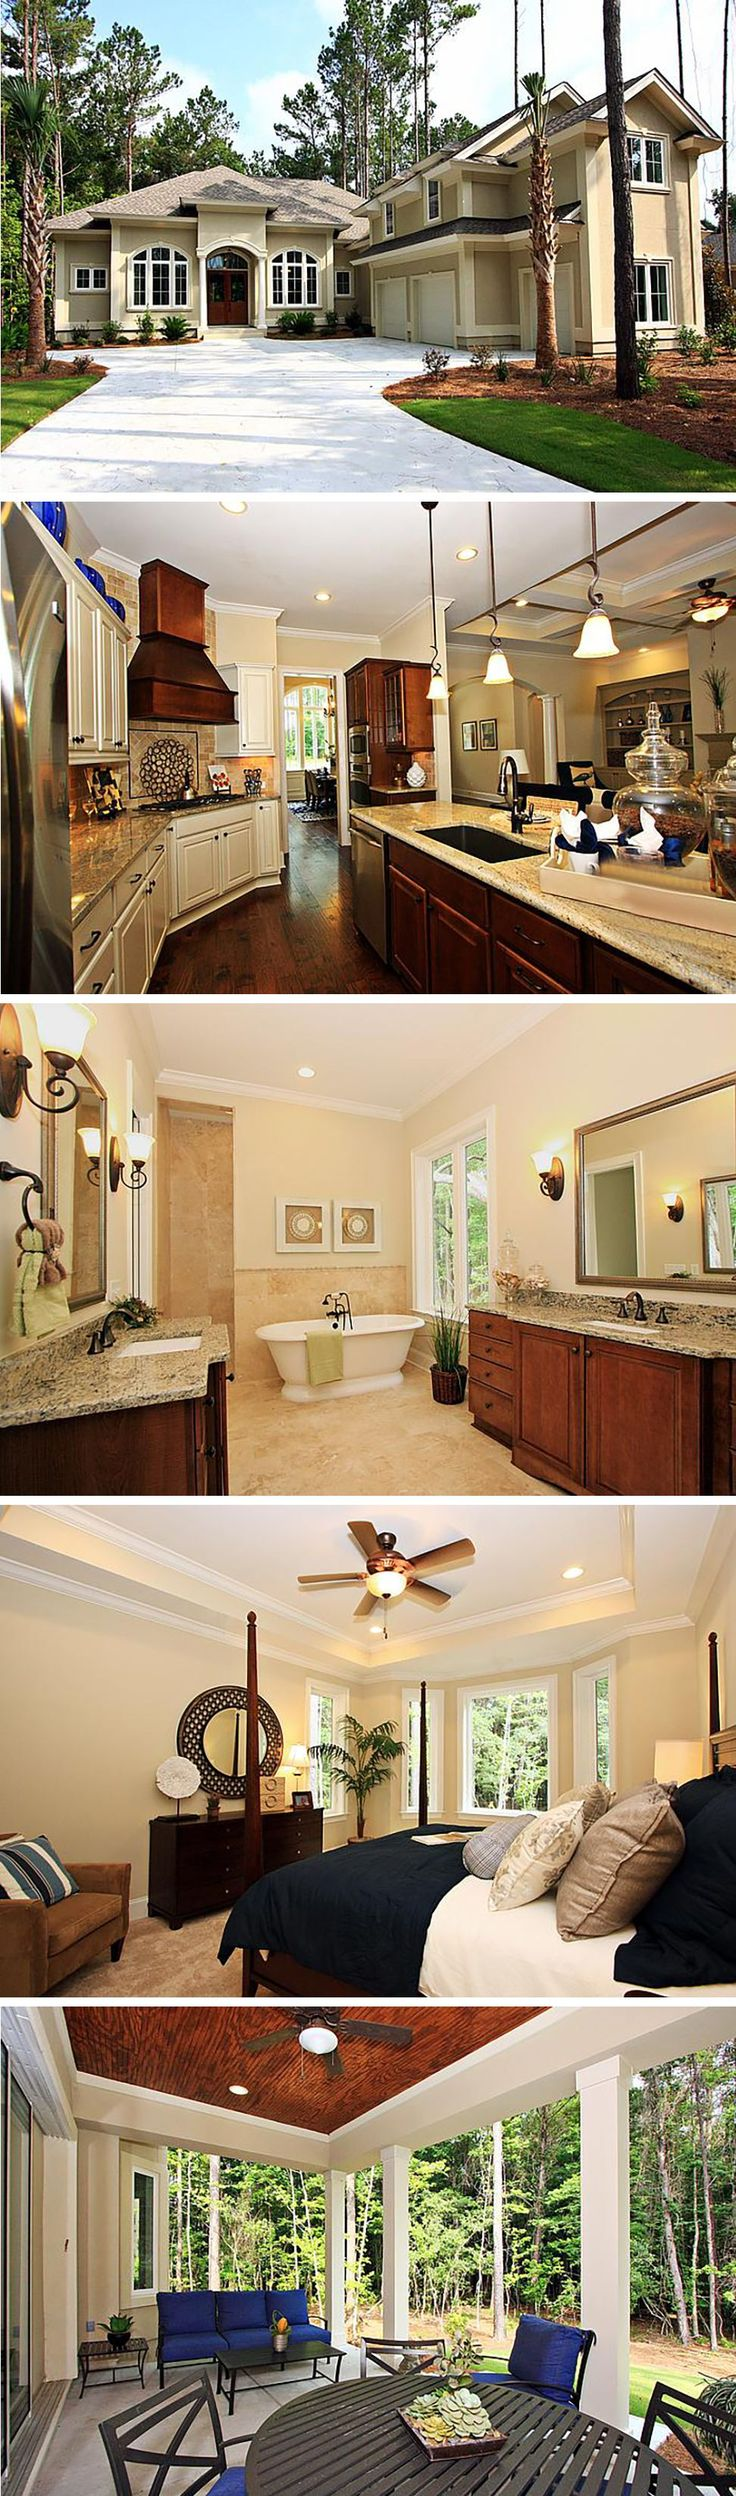 The Kathryn by David Weekley Homes in Bluffton is a 3 bedroom 3 bathroom home that features an open floorplan, a private covered porch, a three car garage and a large owners retreat and bathroom. The home features elegant hardwood and carpeting in bedrooms, as well as a large backyard area.